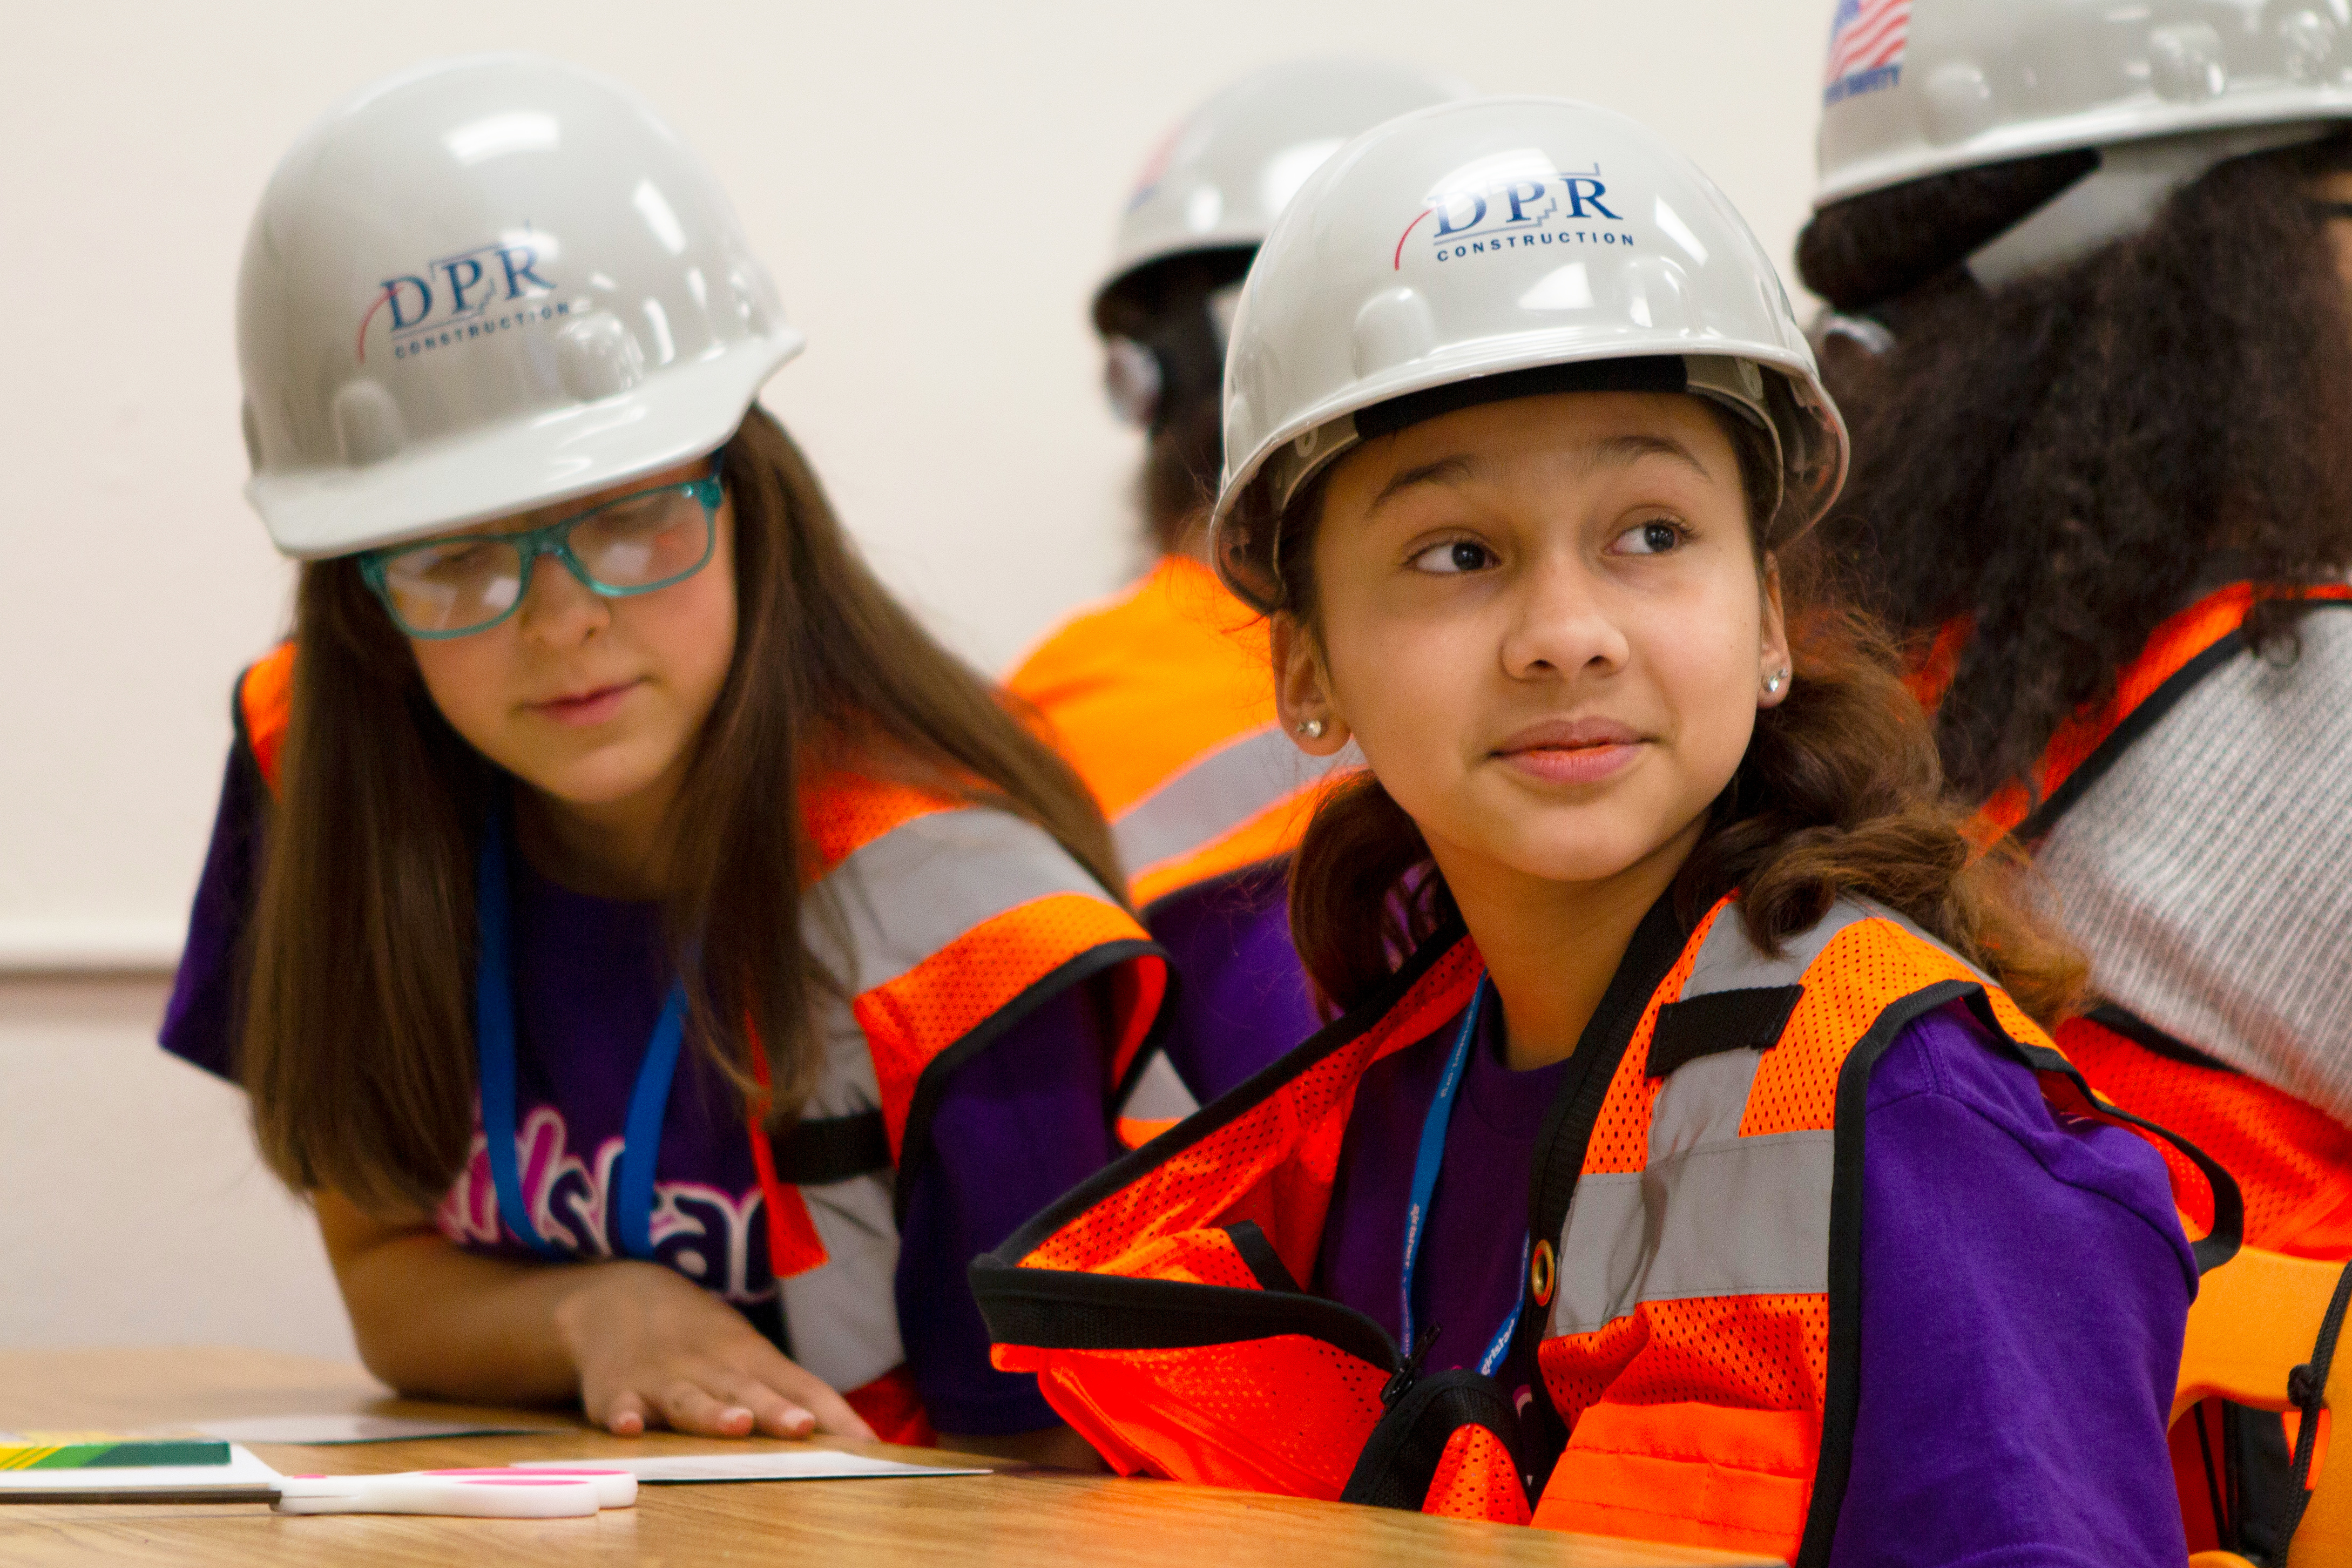 Kids in hard hats during a community event